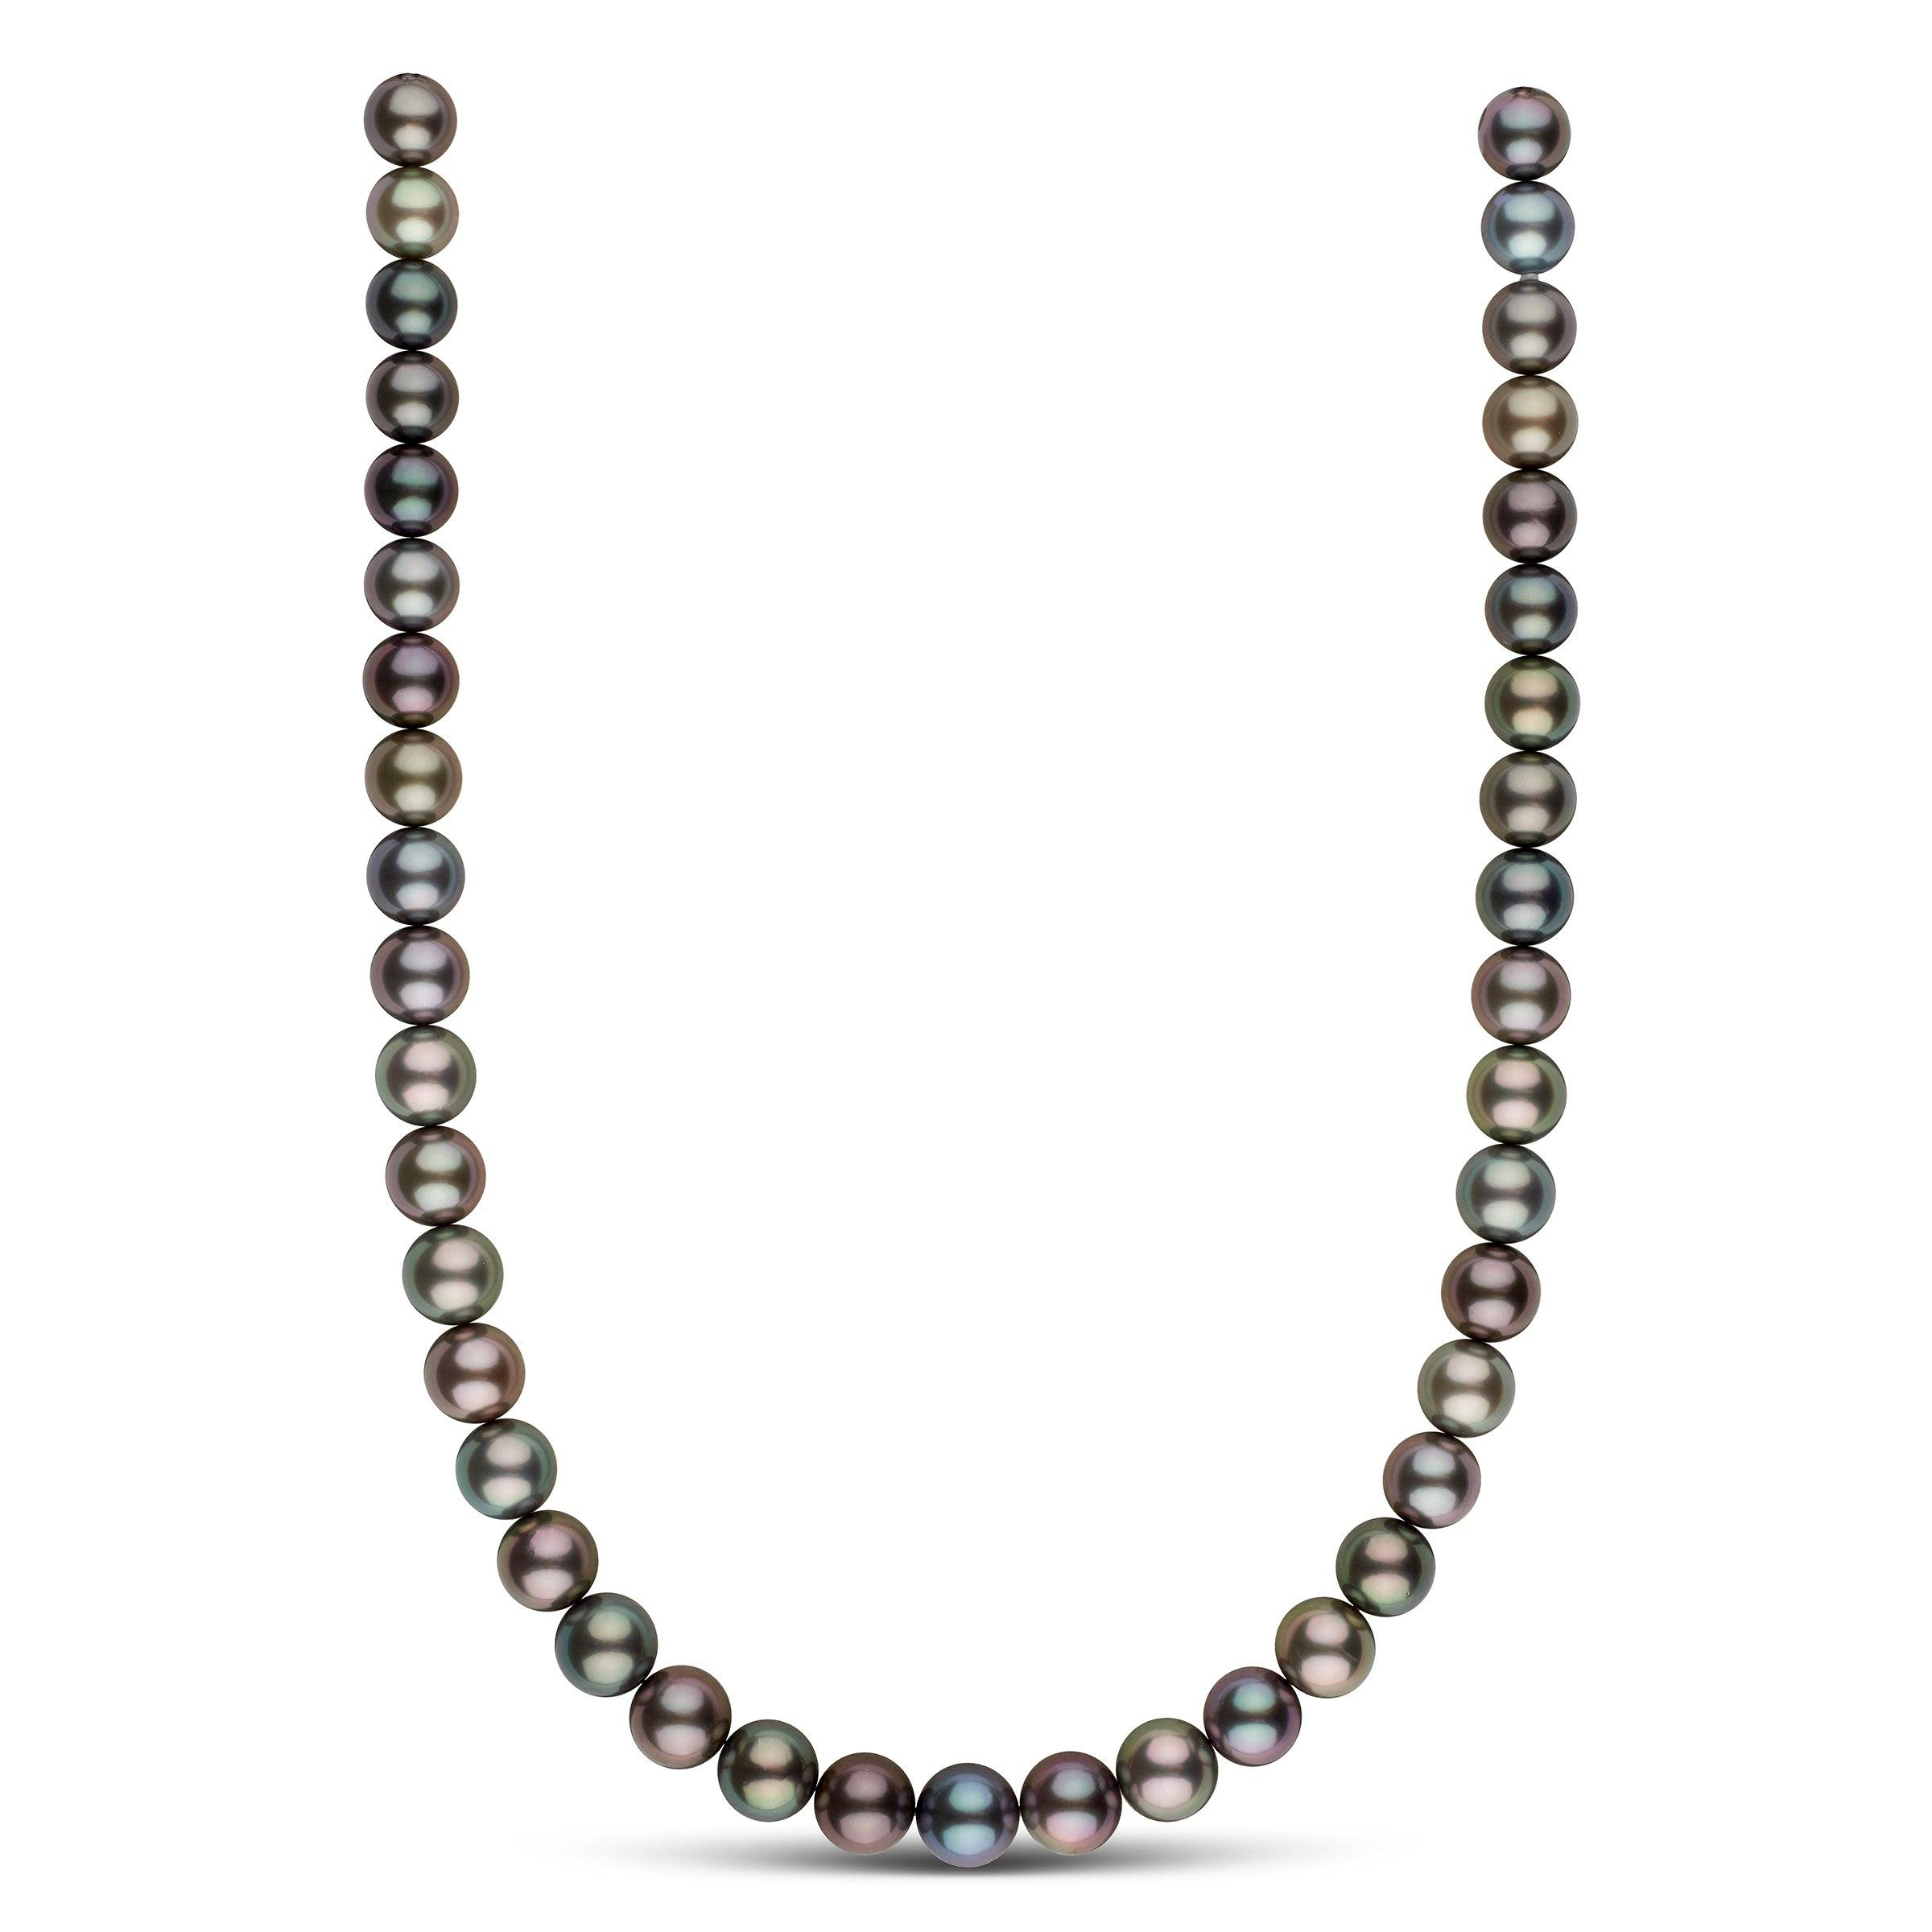 10.0-11.1 mm AA+/AAA Tahitian Round Pearl Necklace